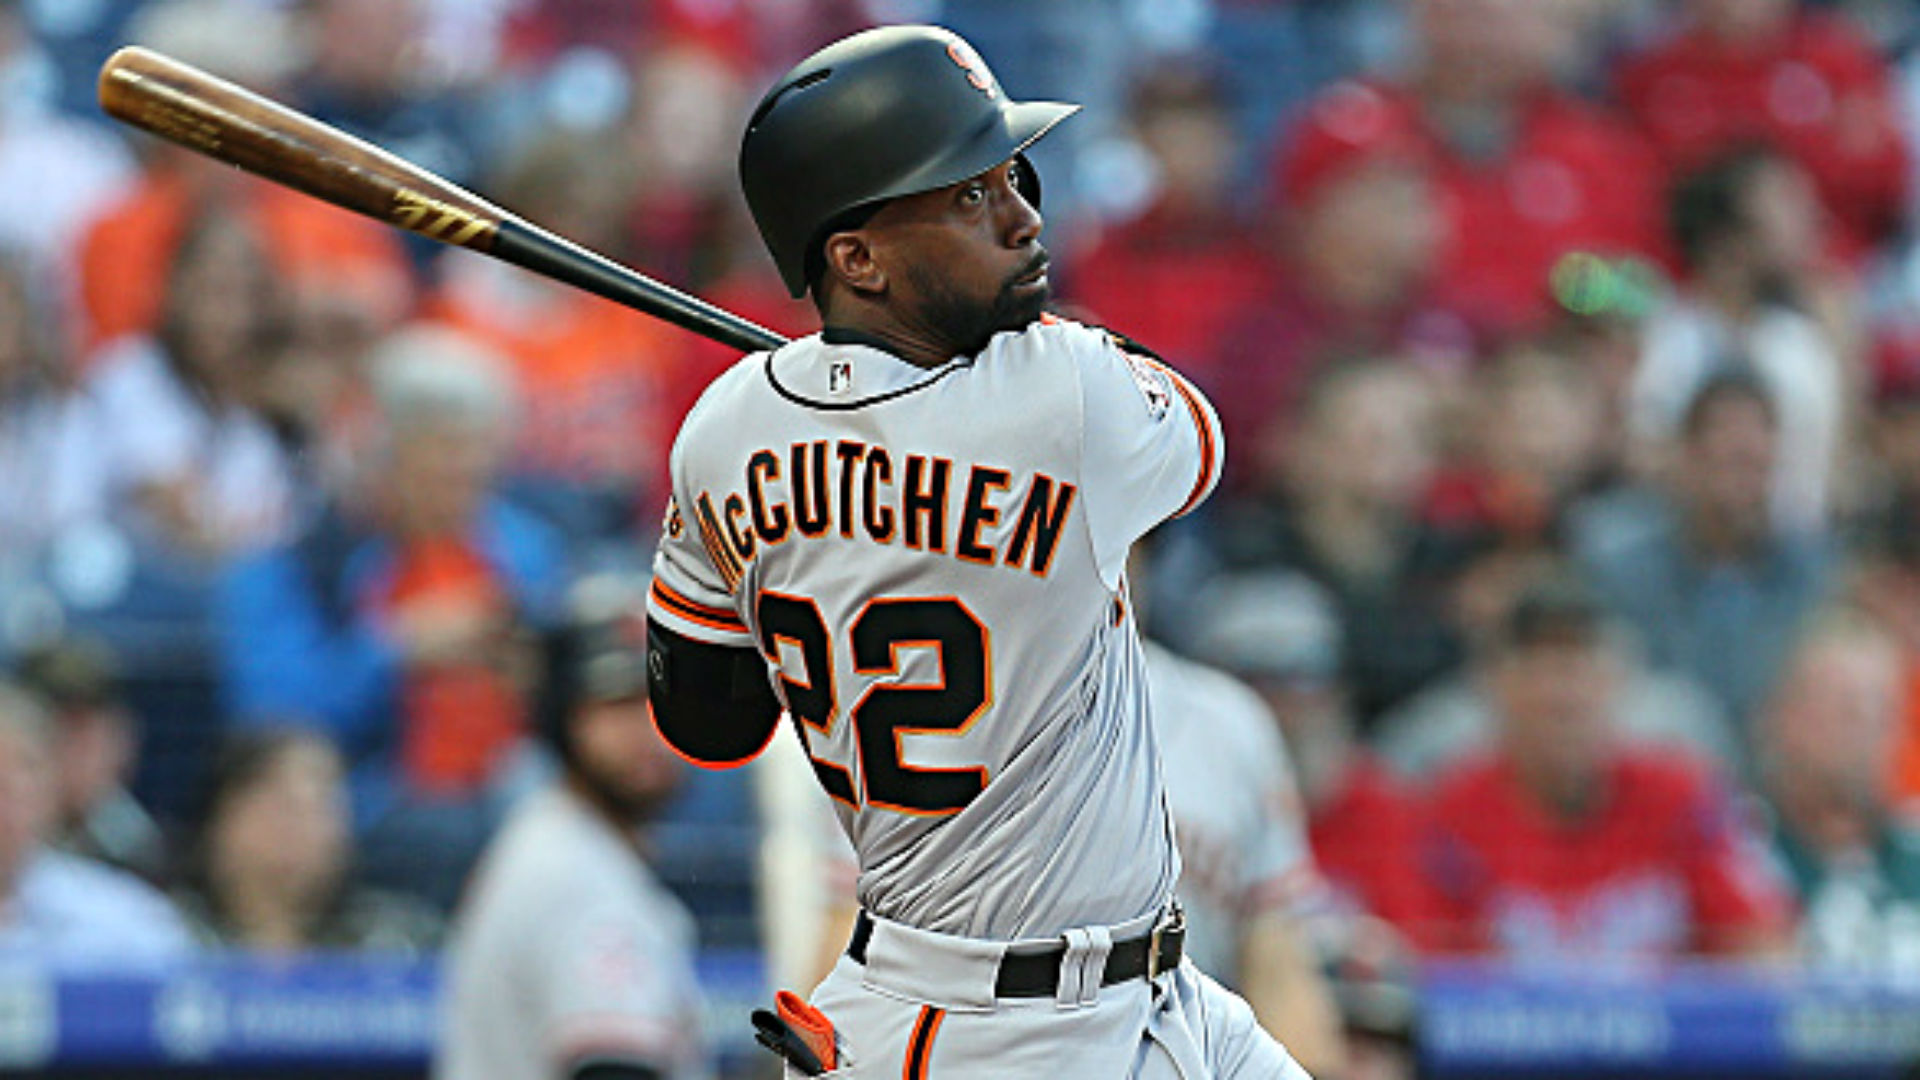 Giants' Andrew McCutchen Gets Long Standing Ovation in Return to Pittsburgh